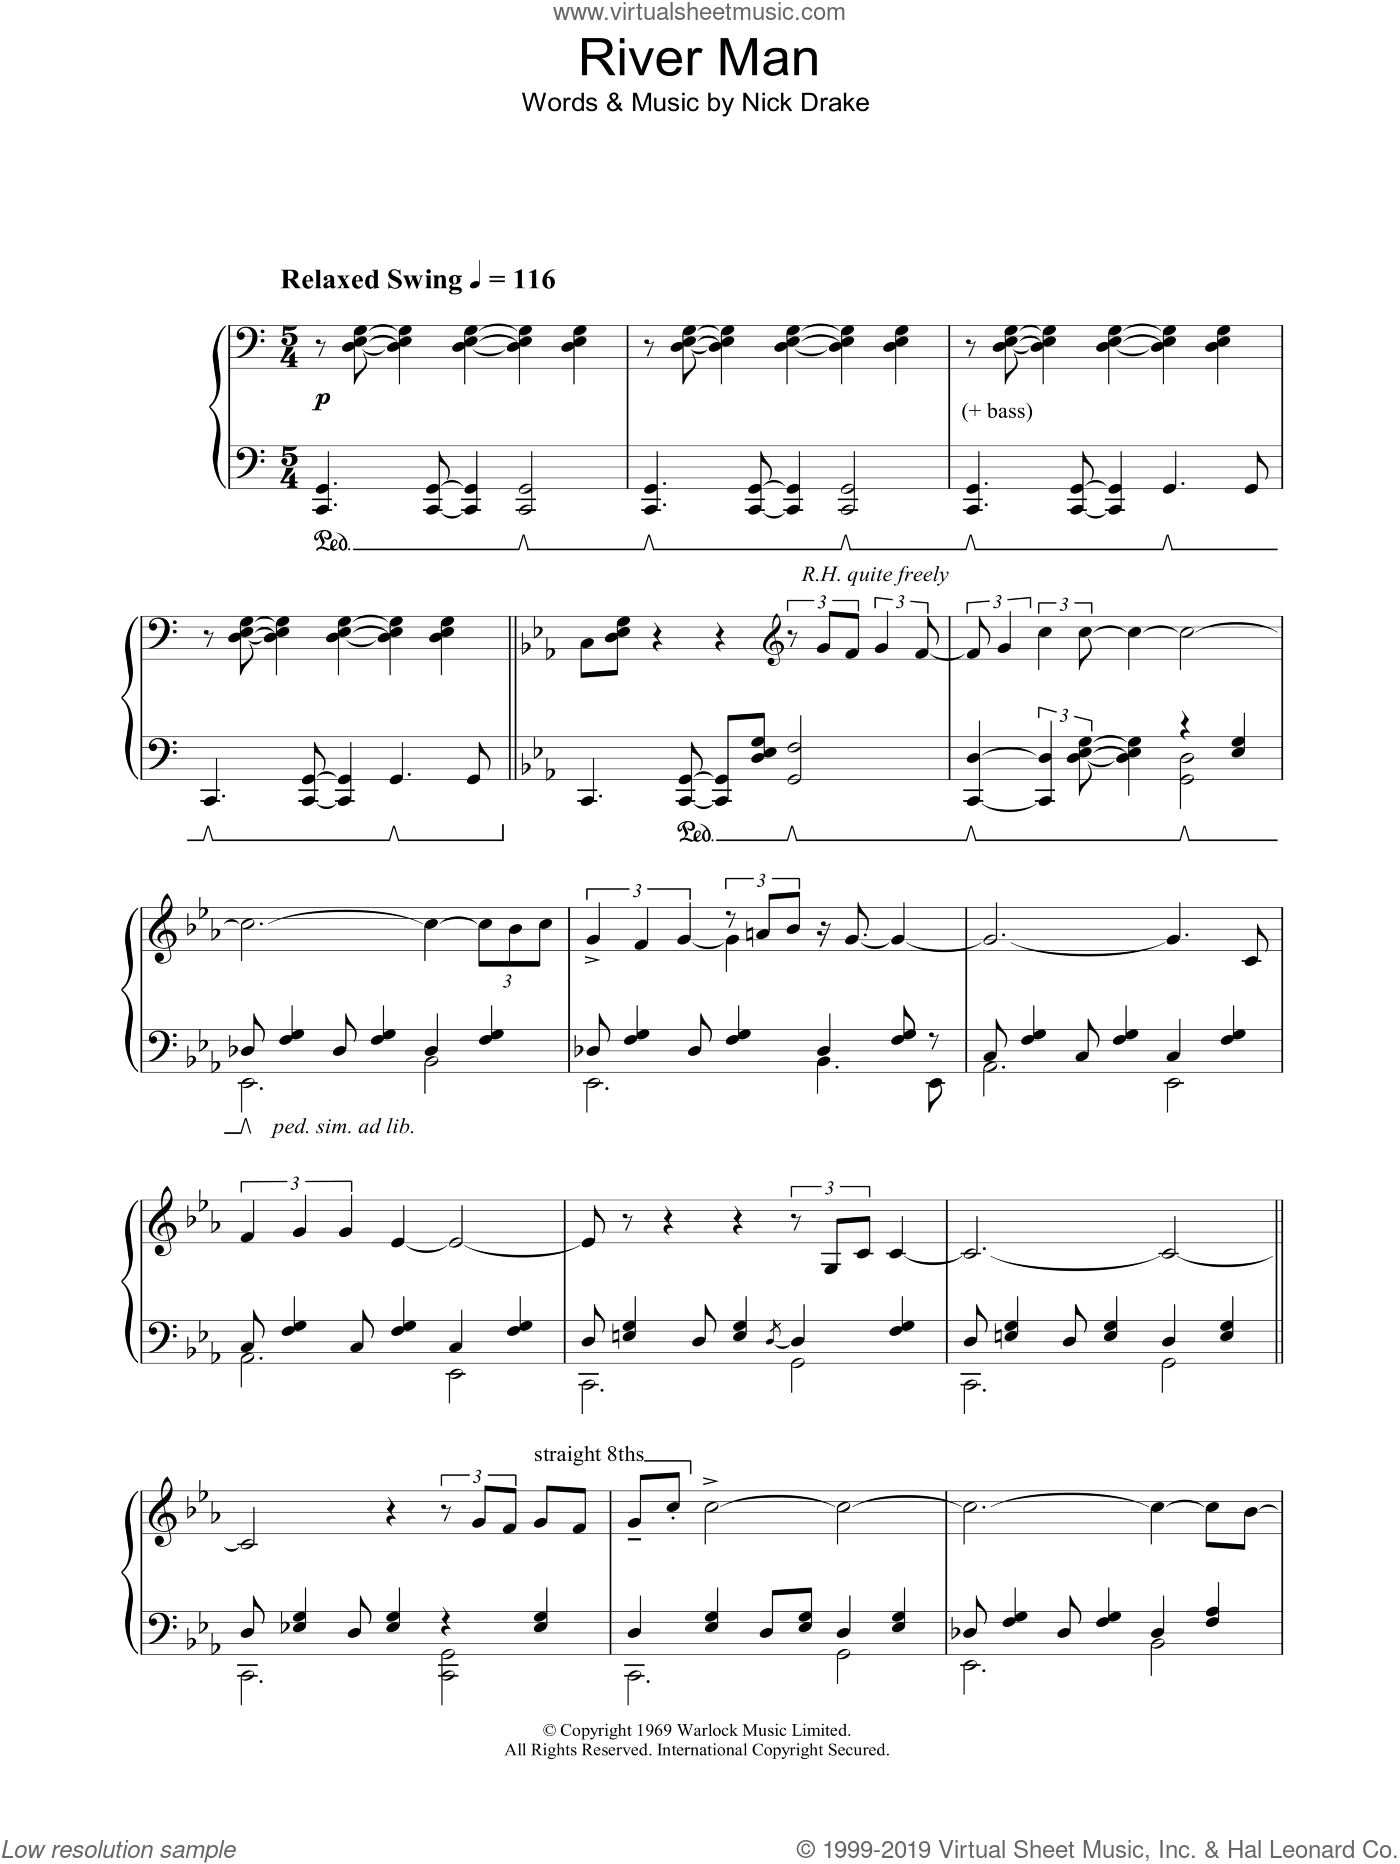 River Man sheet music for piano solo by Nick Drake